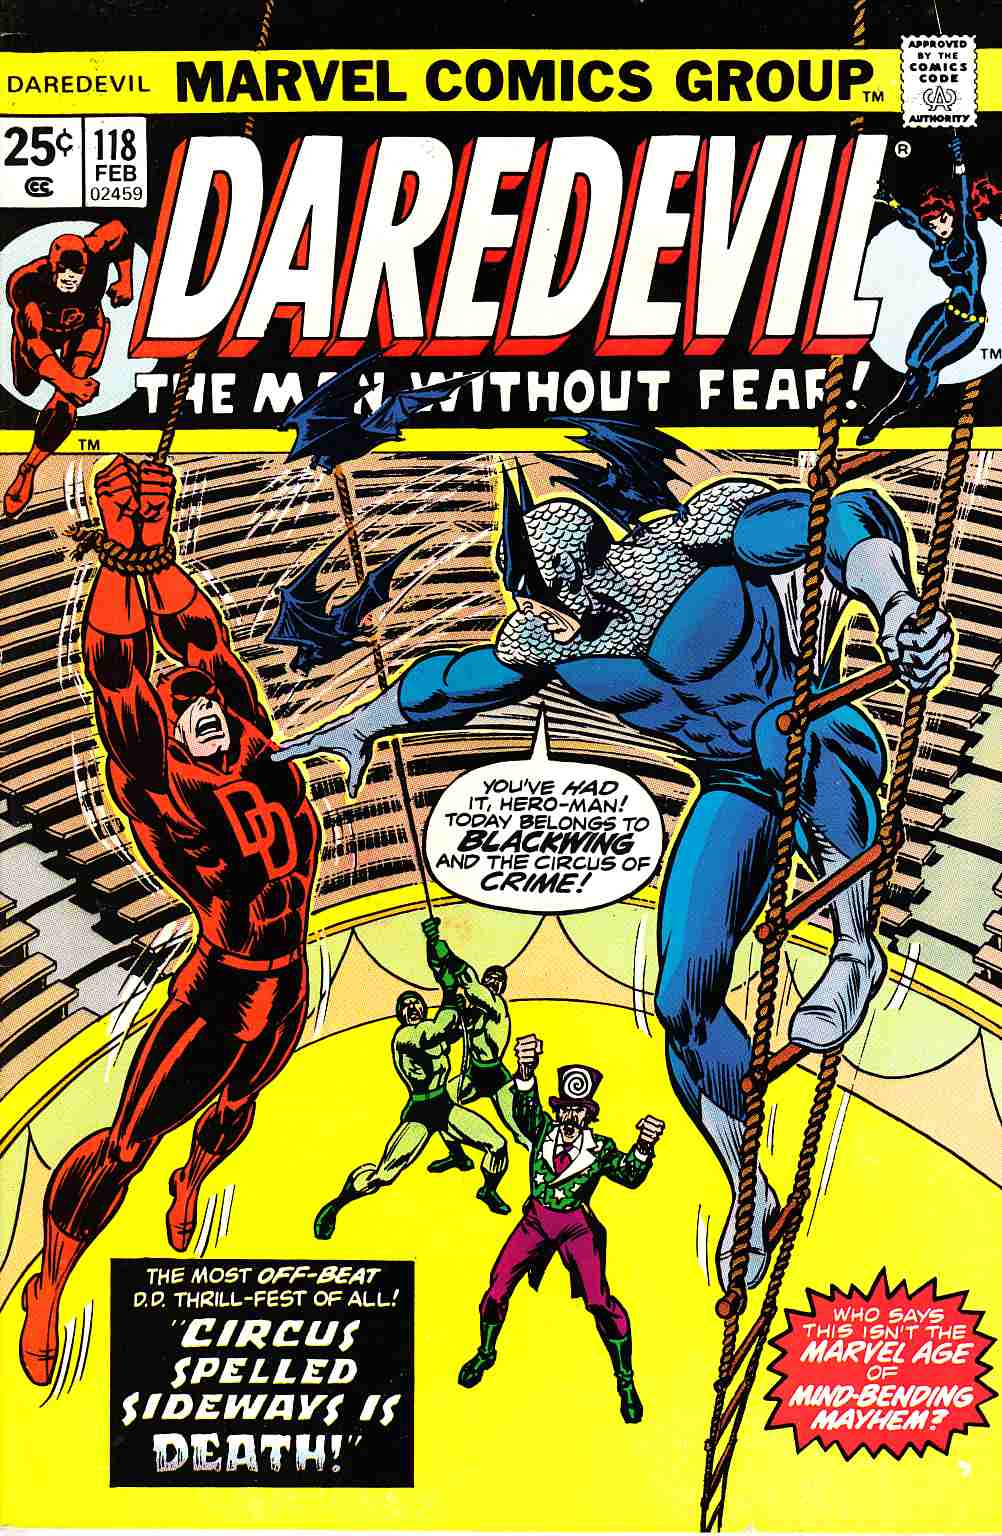 Daredevil #118 Very Good Plus (4.5) [Marvel Comic]